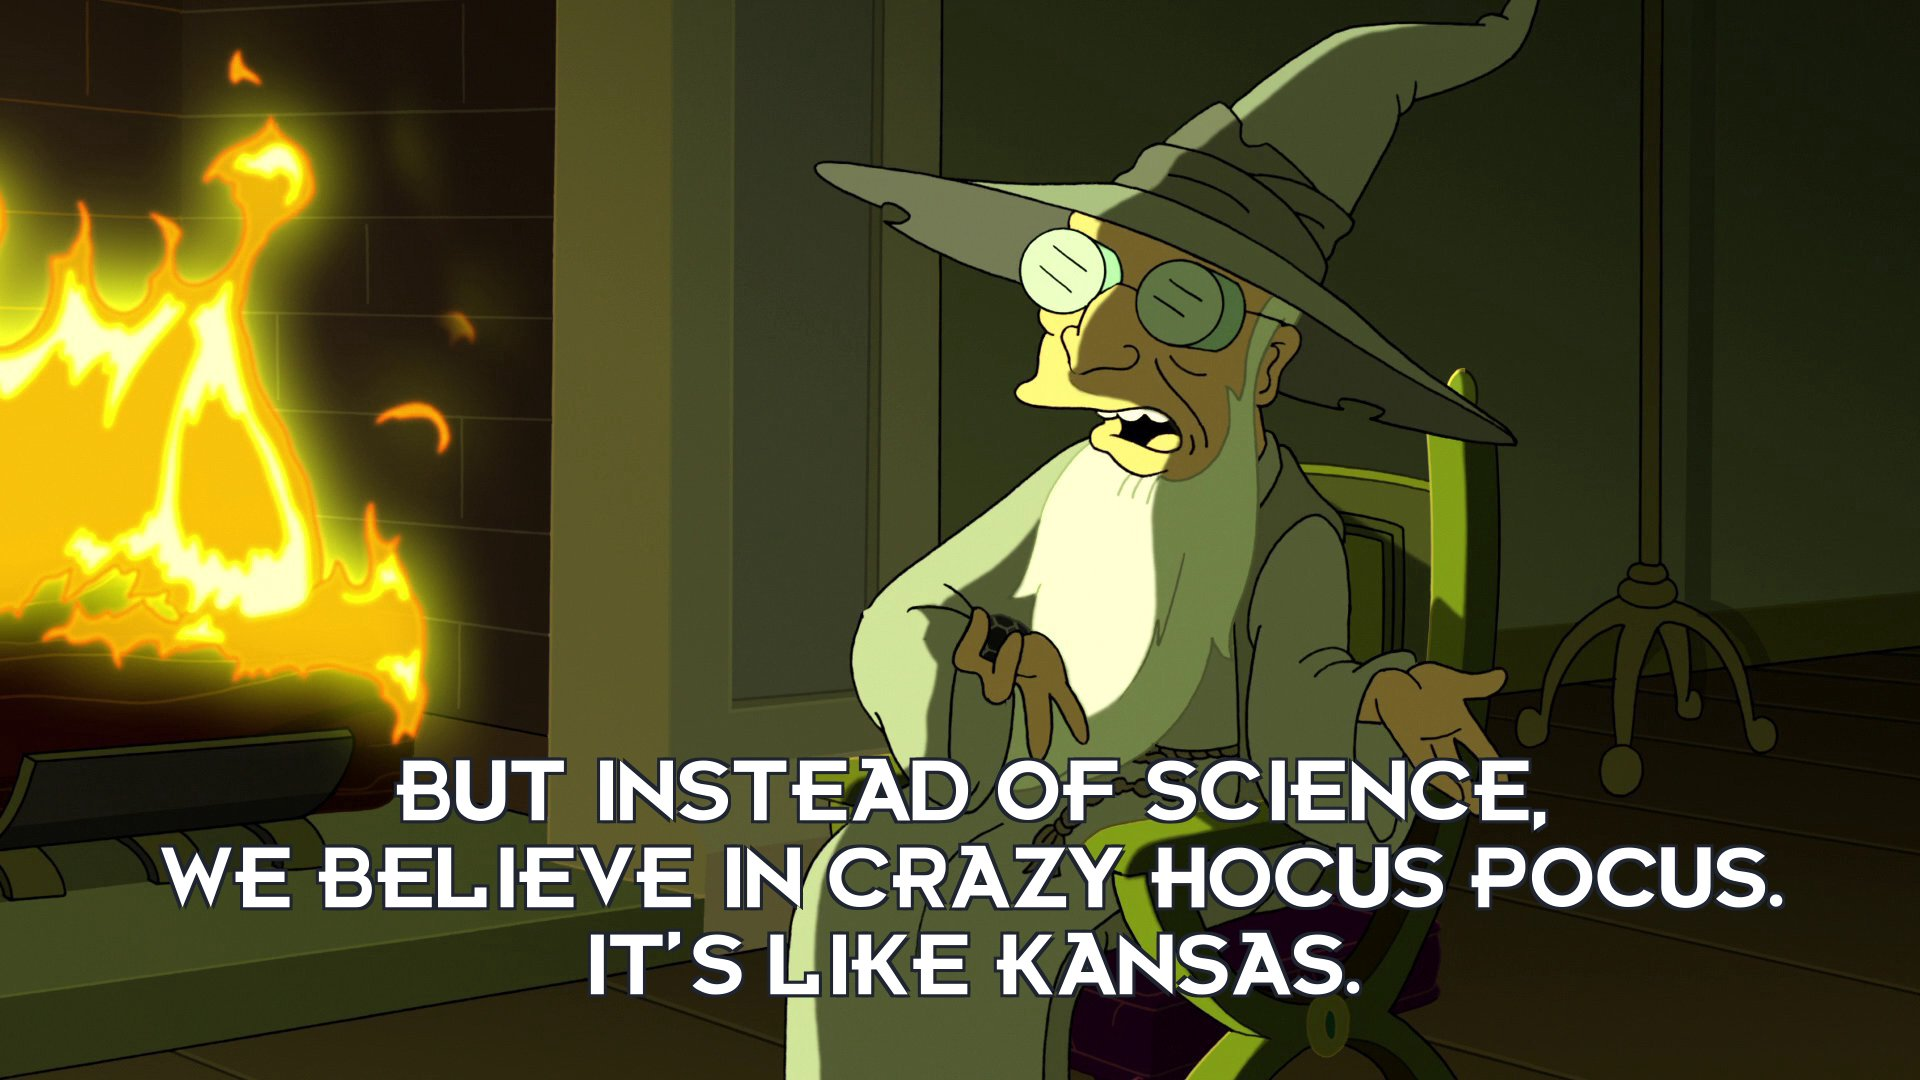 Greyfarn: But instead of science, we believe in crazy hocus pocus. It's like Kansas.